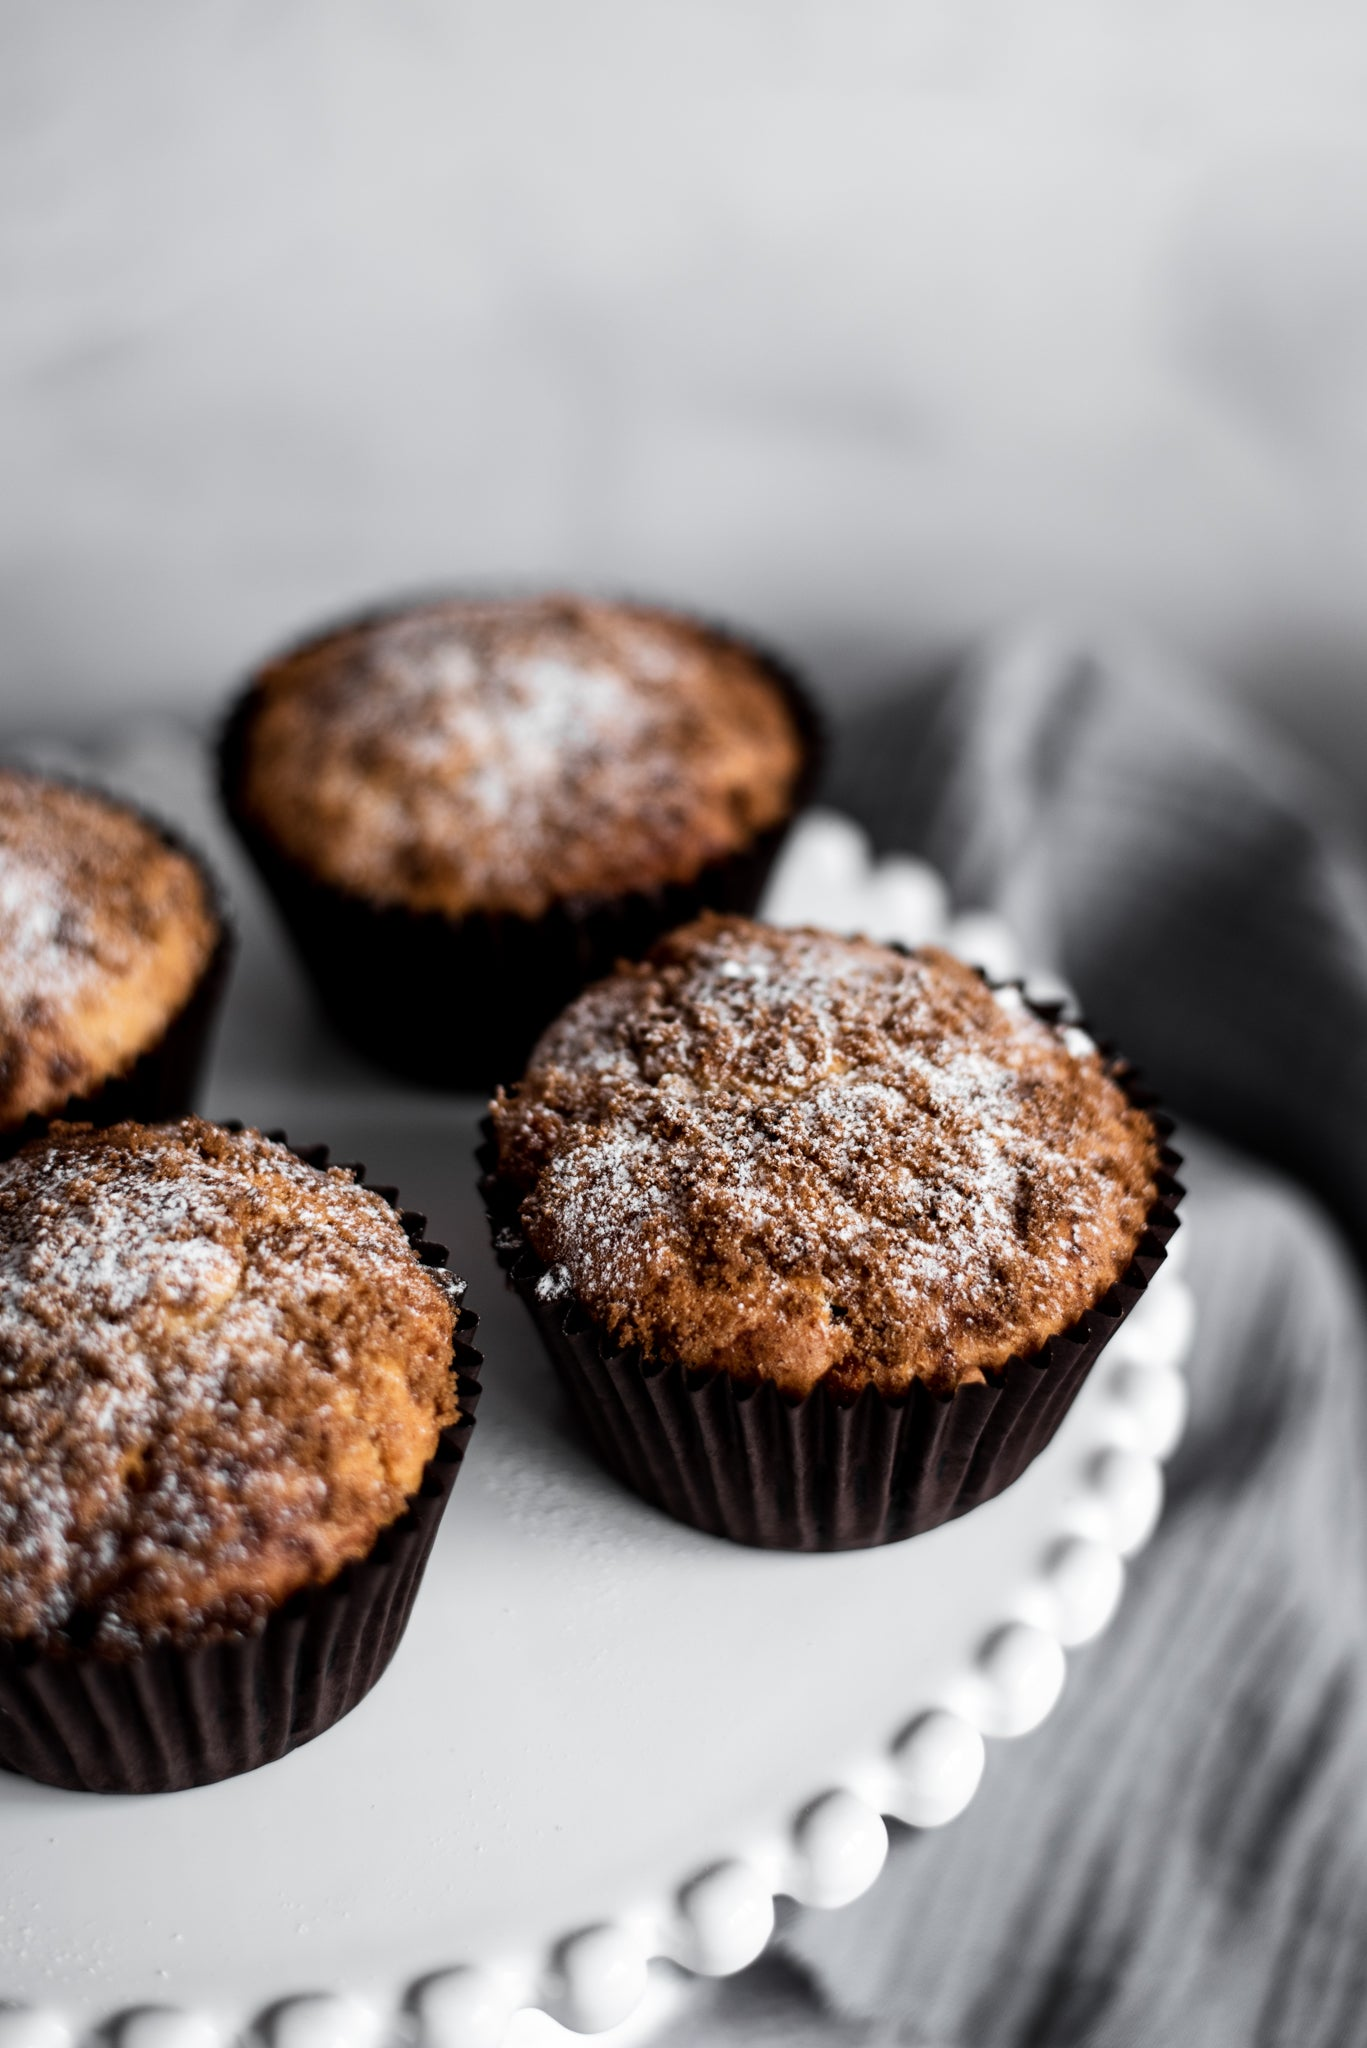 Toffee-And-Apple-Sauce-Muffins-WEB-RES-4.jpg